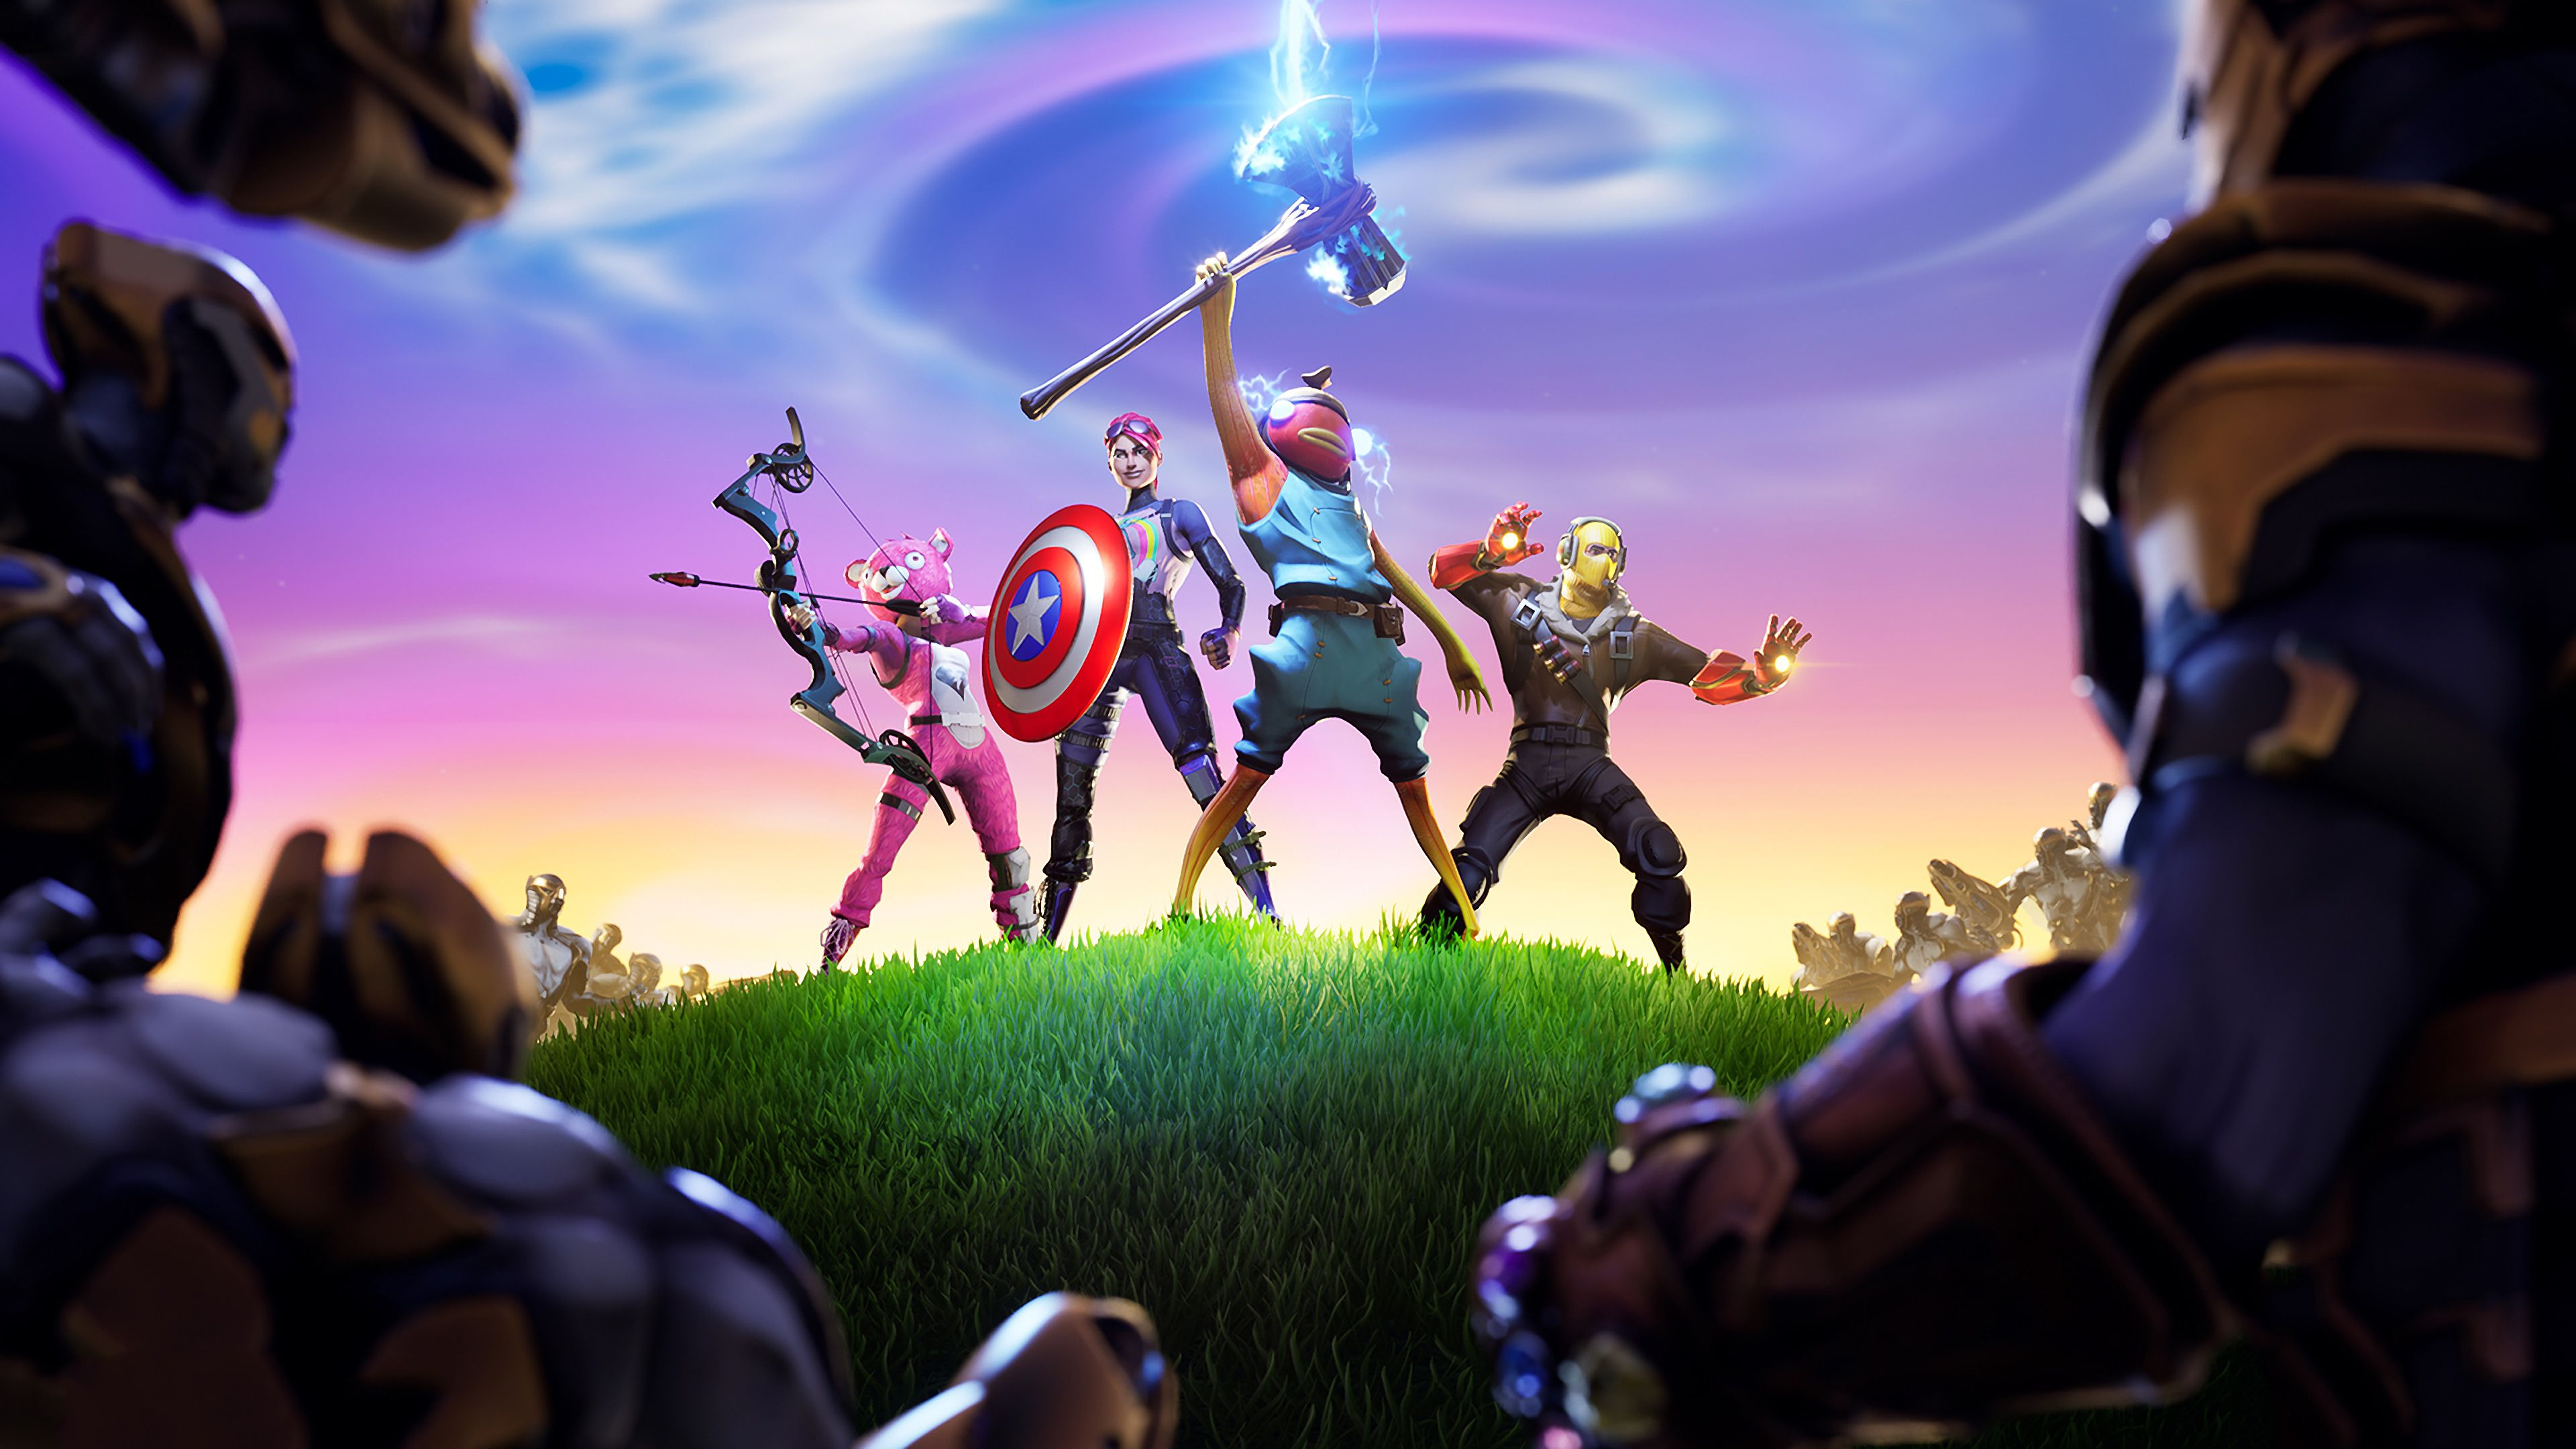 Fortnite X Avengers Superheroes Wallpapers Hd Wallpapers Fortnite Wallpapers Avengers Wallpapers 4k Wallpapers Avengers Pictures Avengers Fortnite